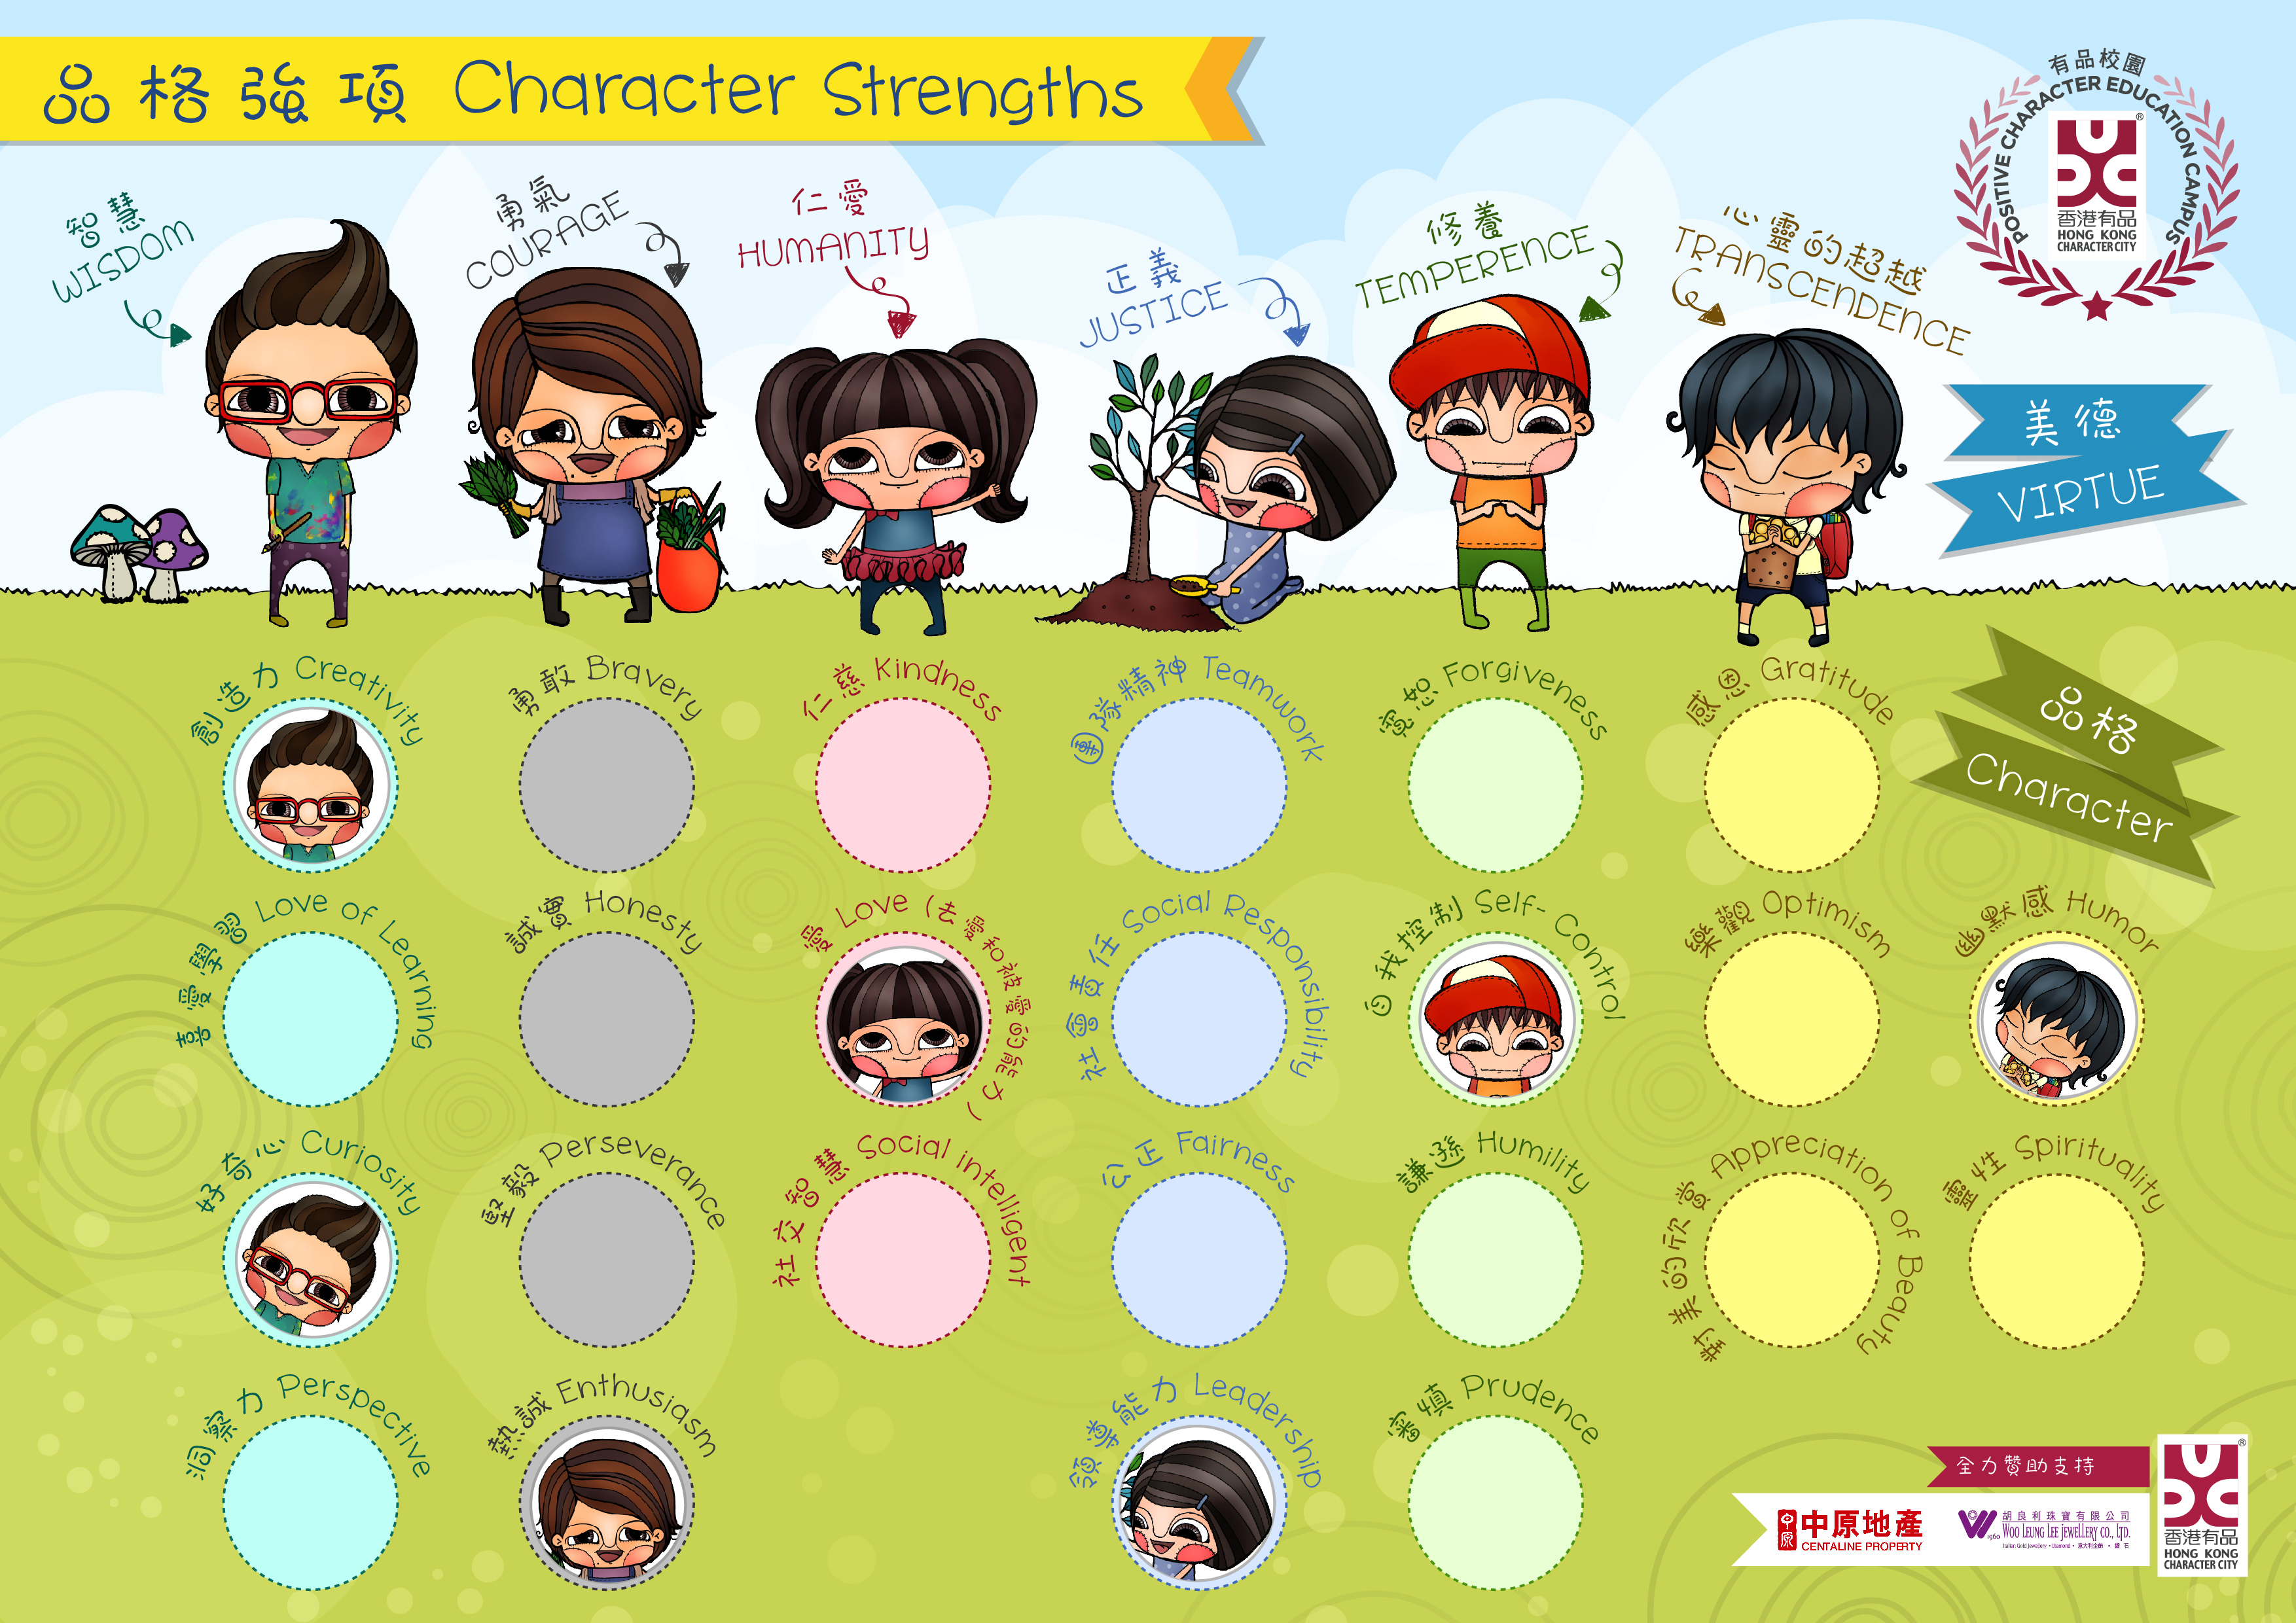 20150527_character_chart-01